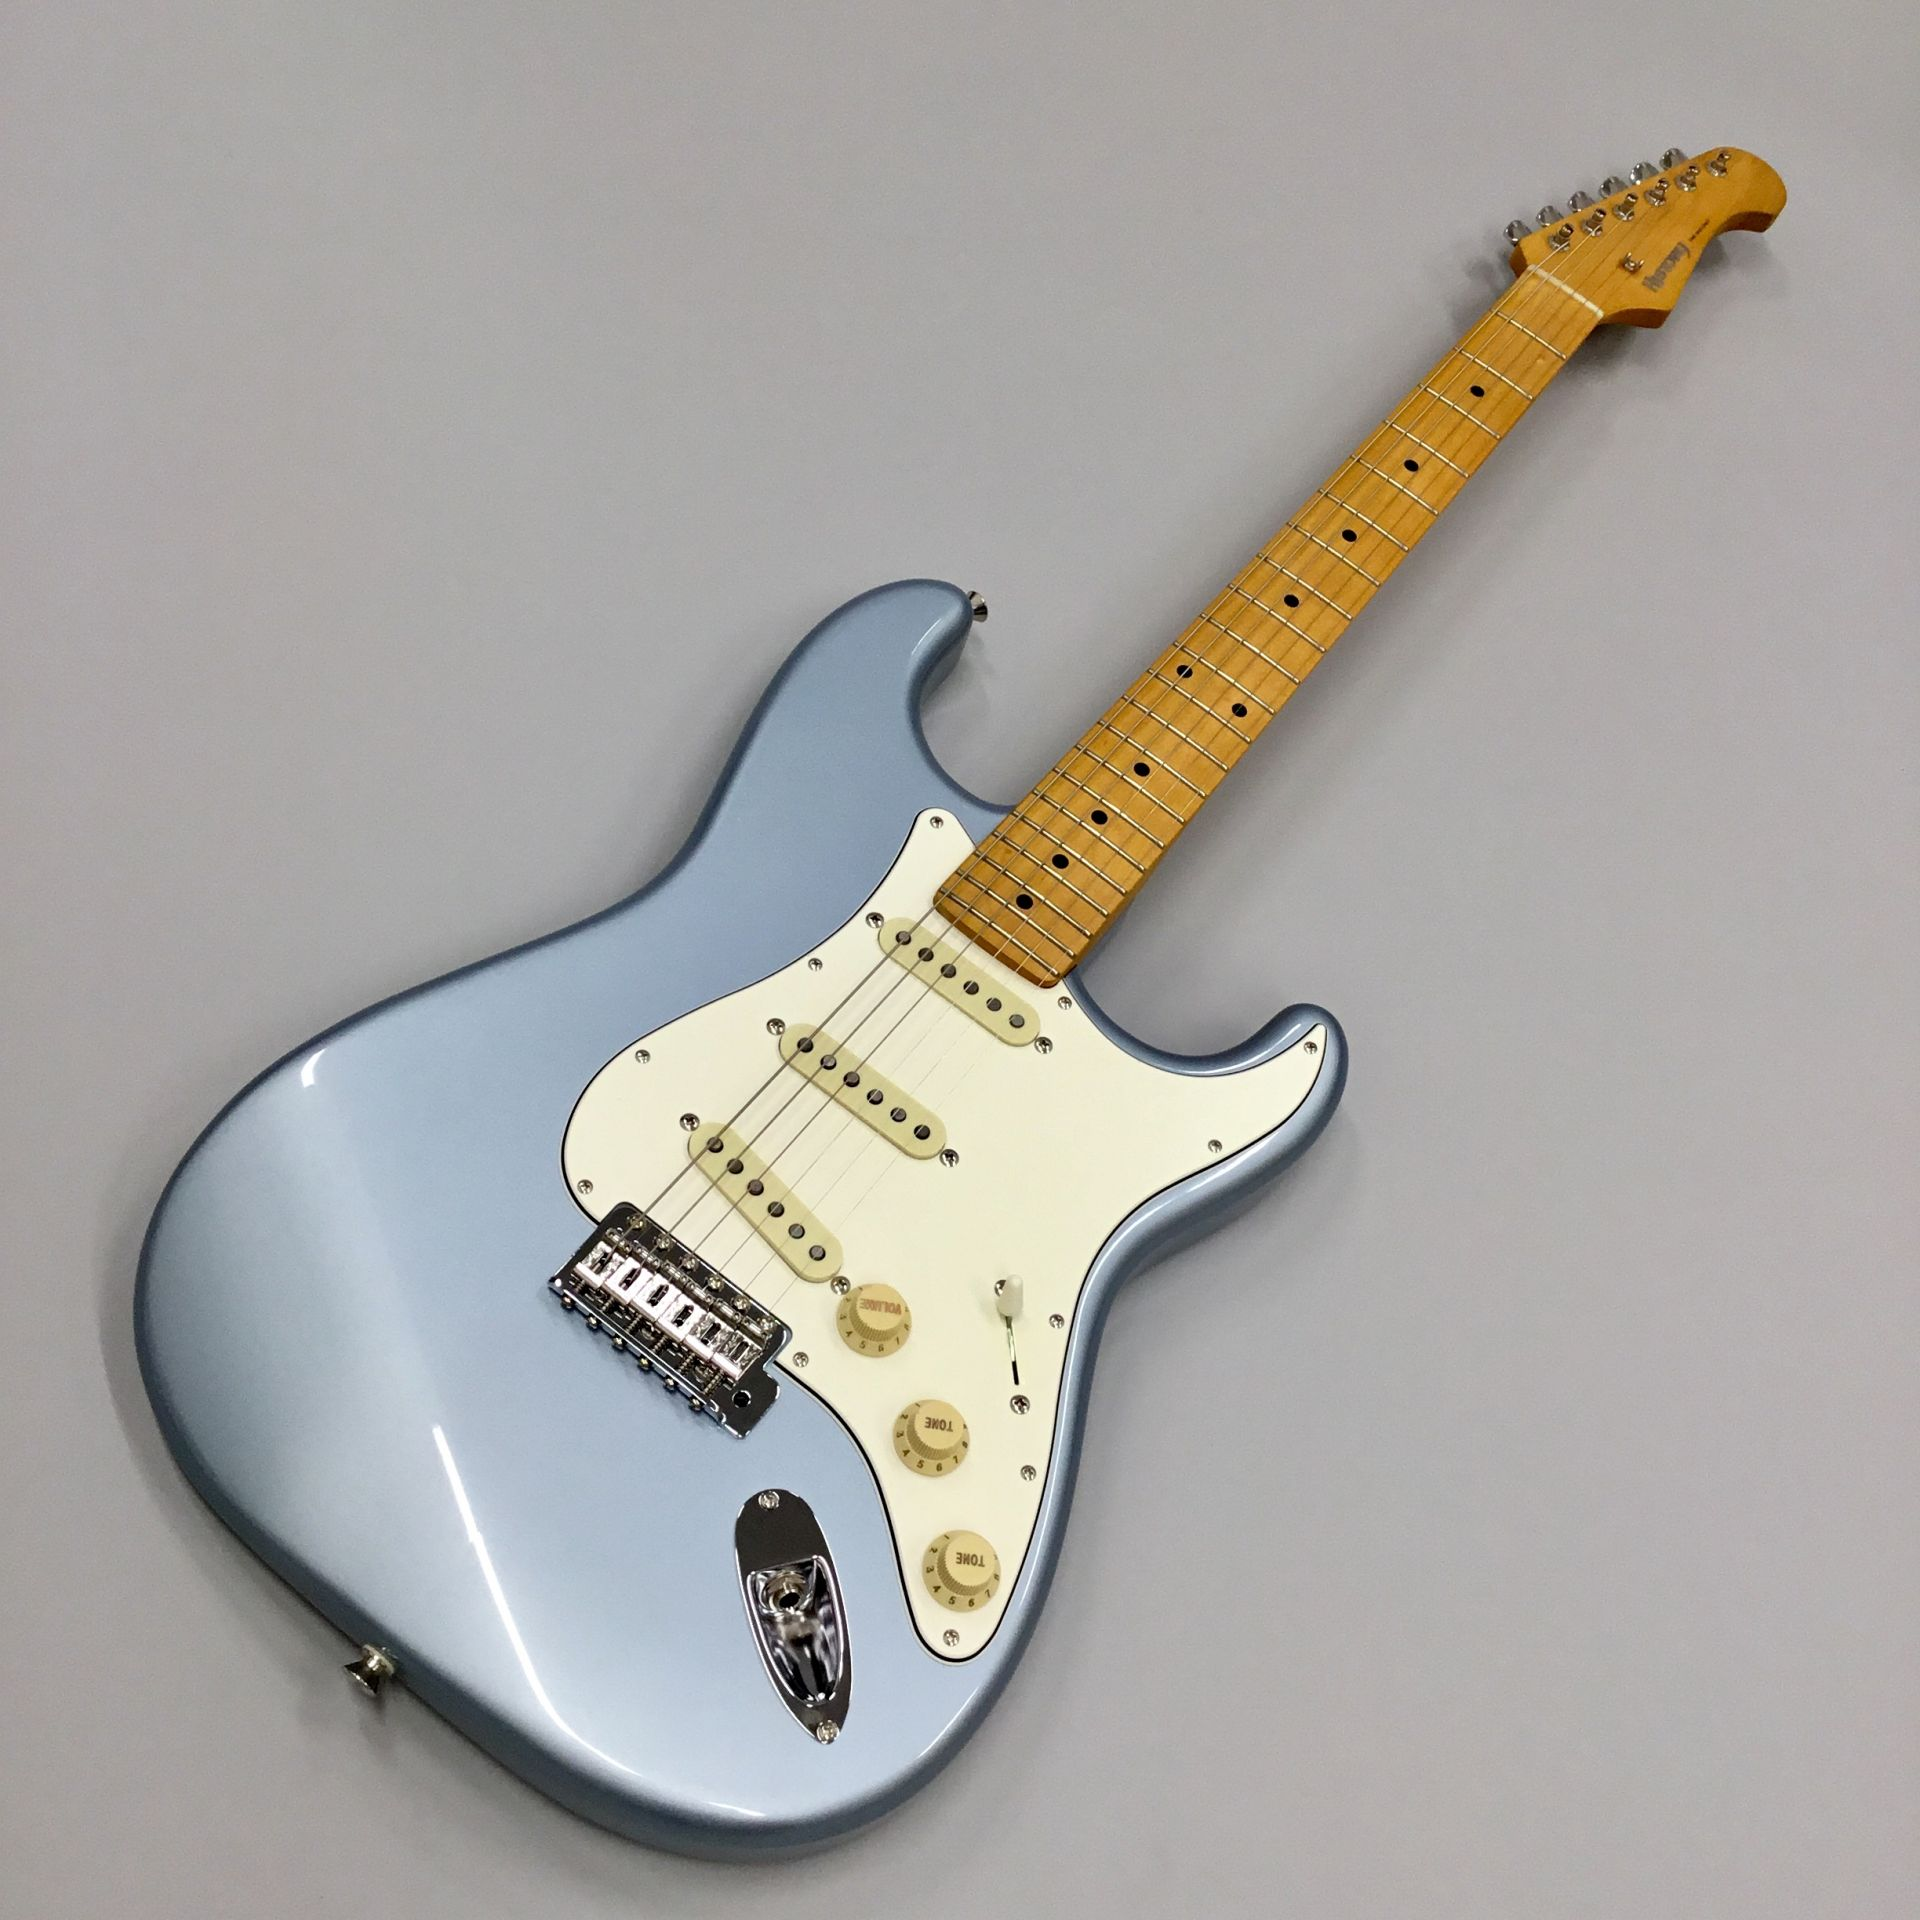 HISTORY TH-SV/M Old Ice Blue